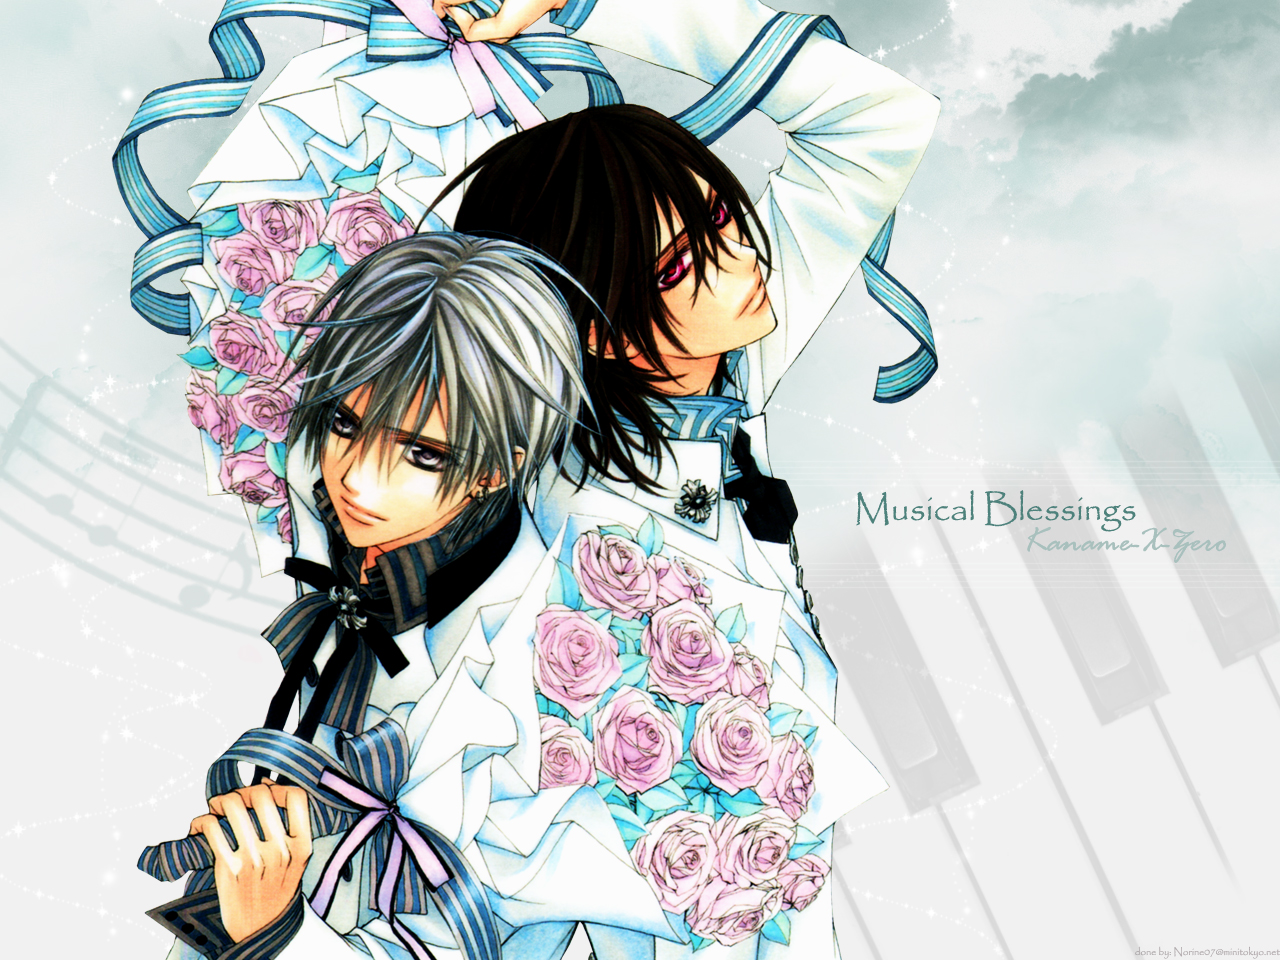 Download Vampire Knight Wallpaper: Musical Blessings ...